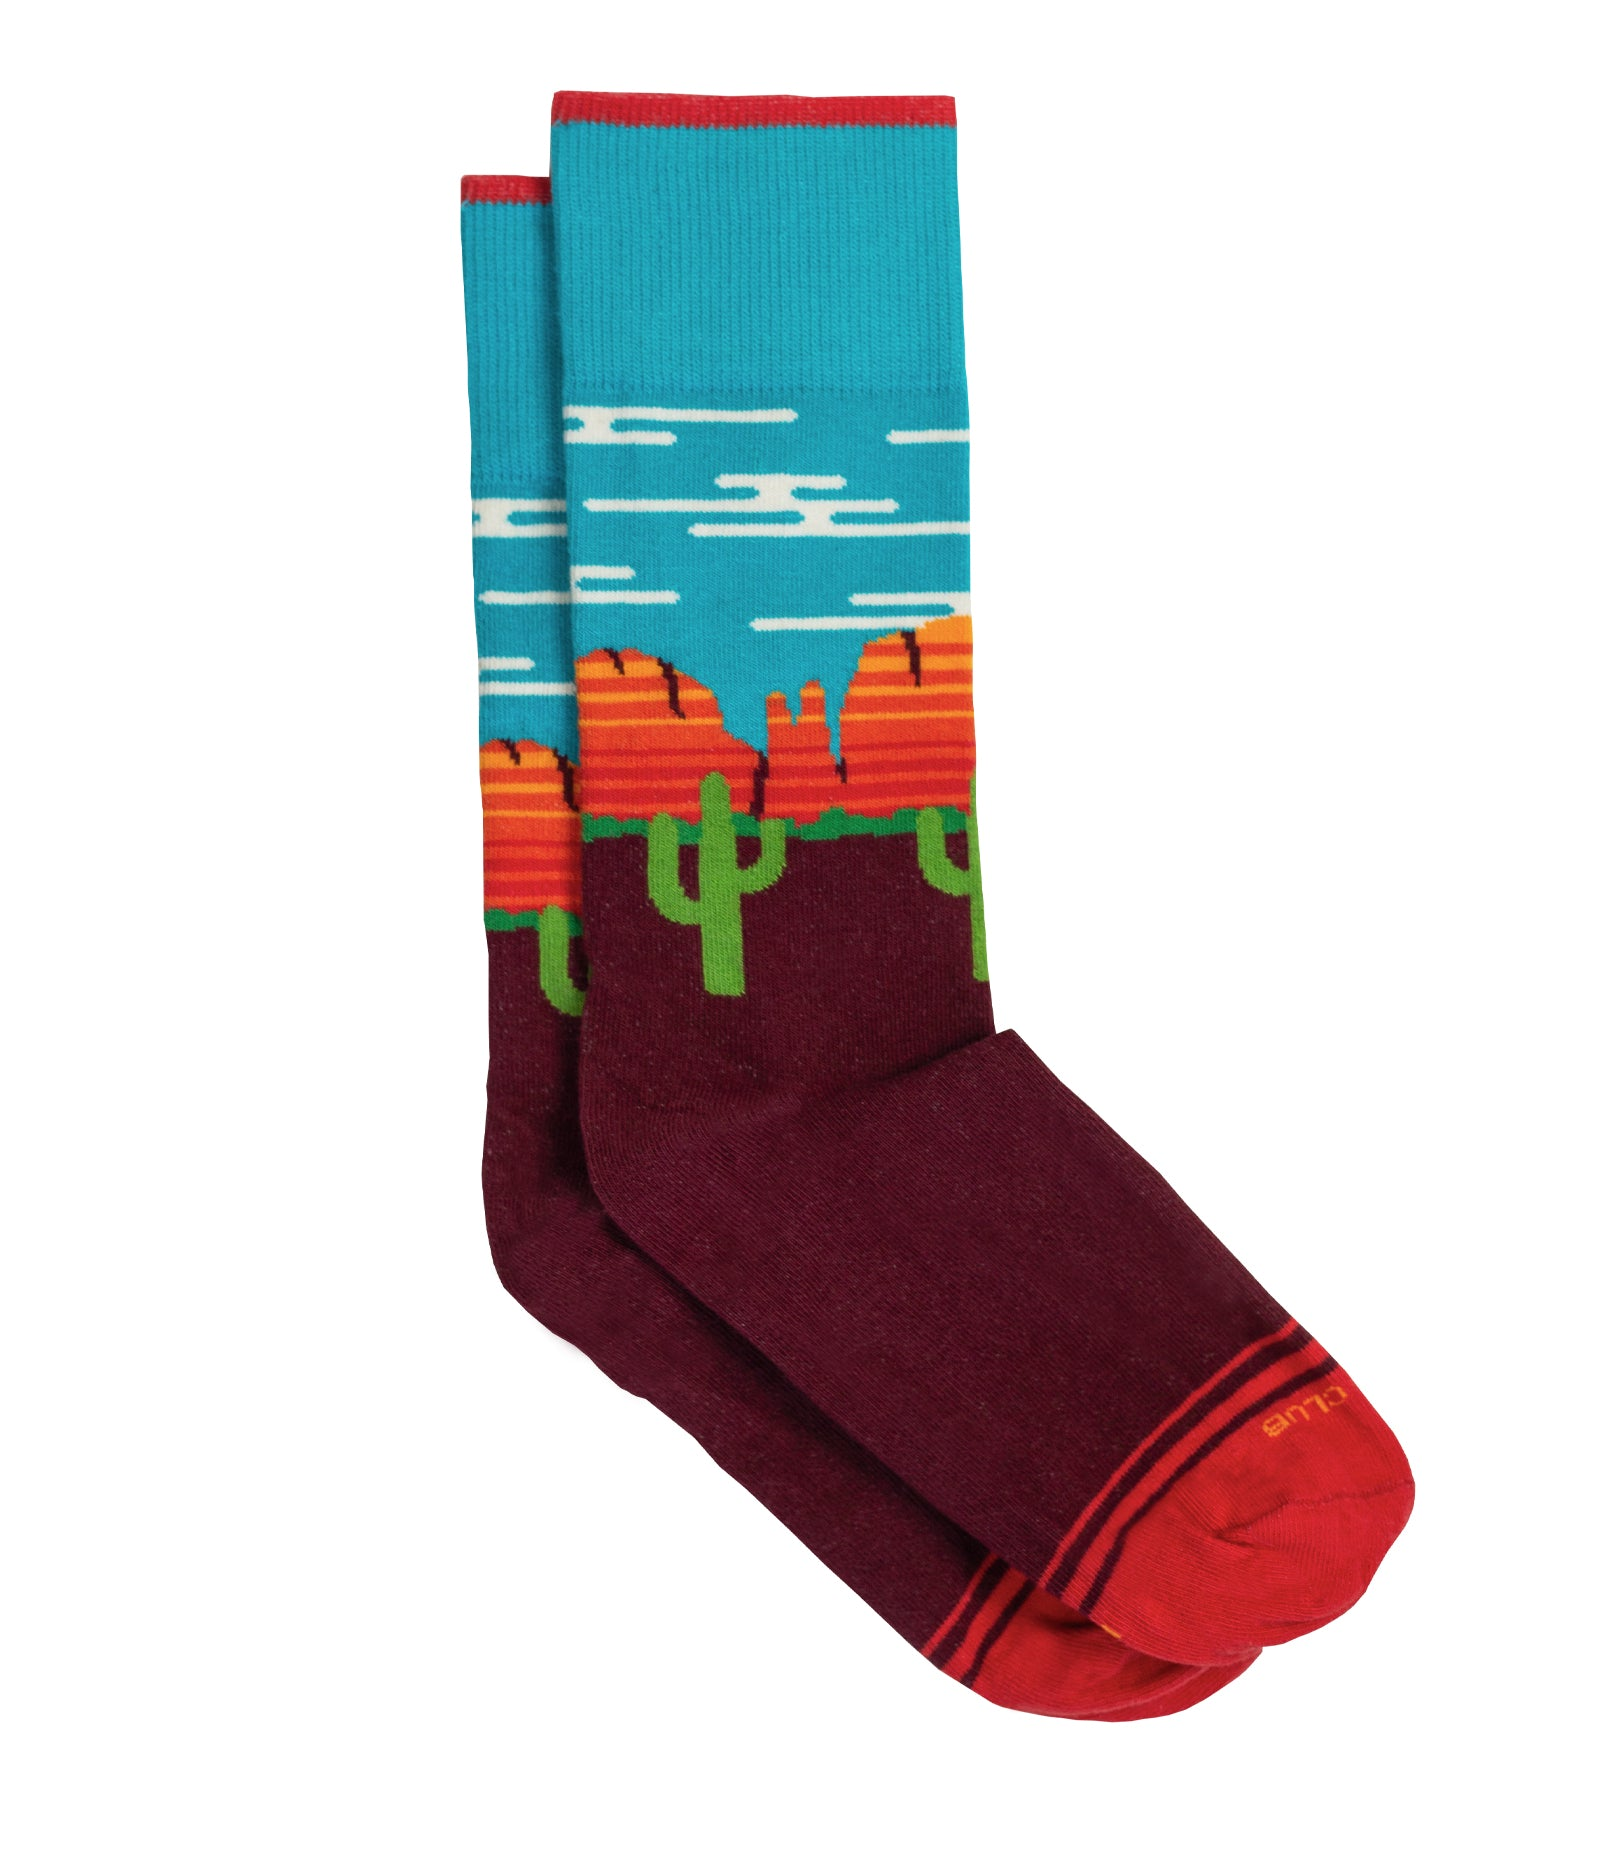 The Sedona - Maroon - Sock Club Store